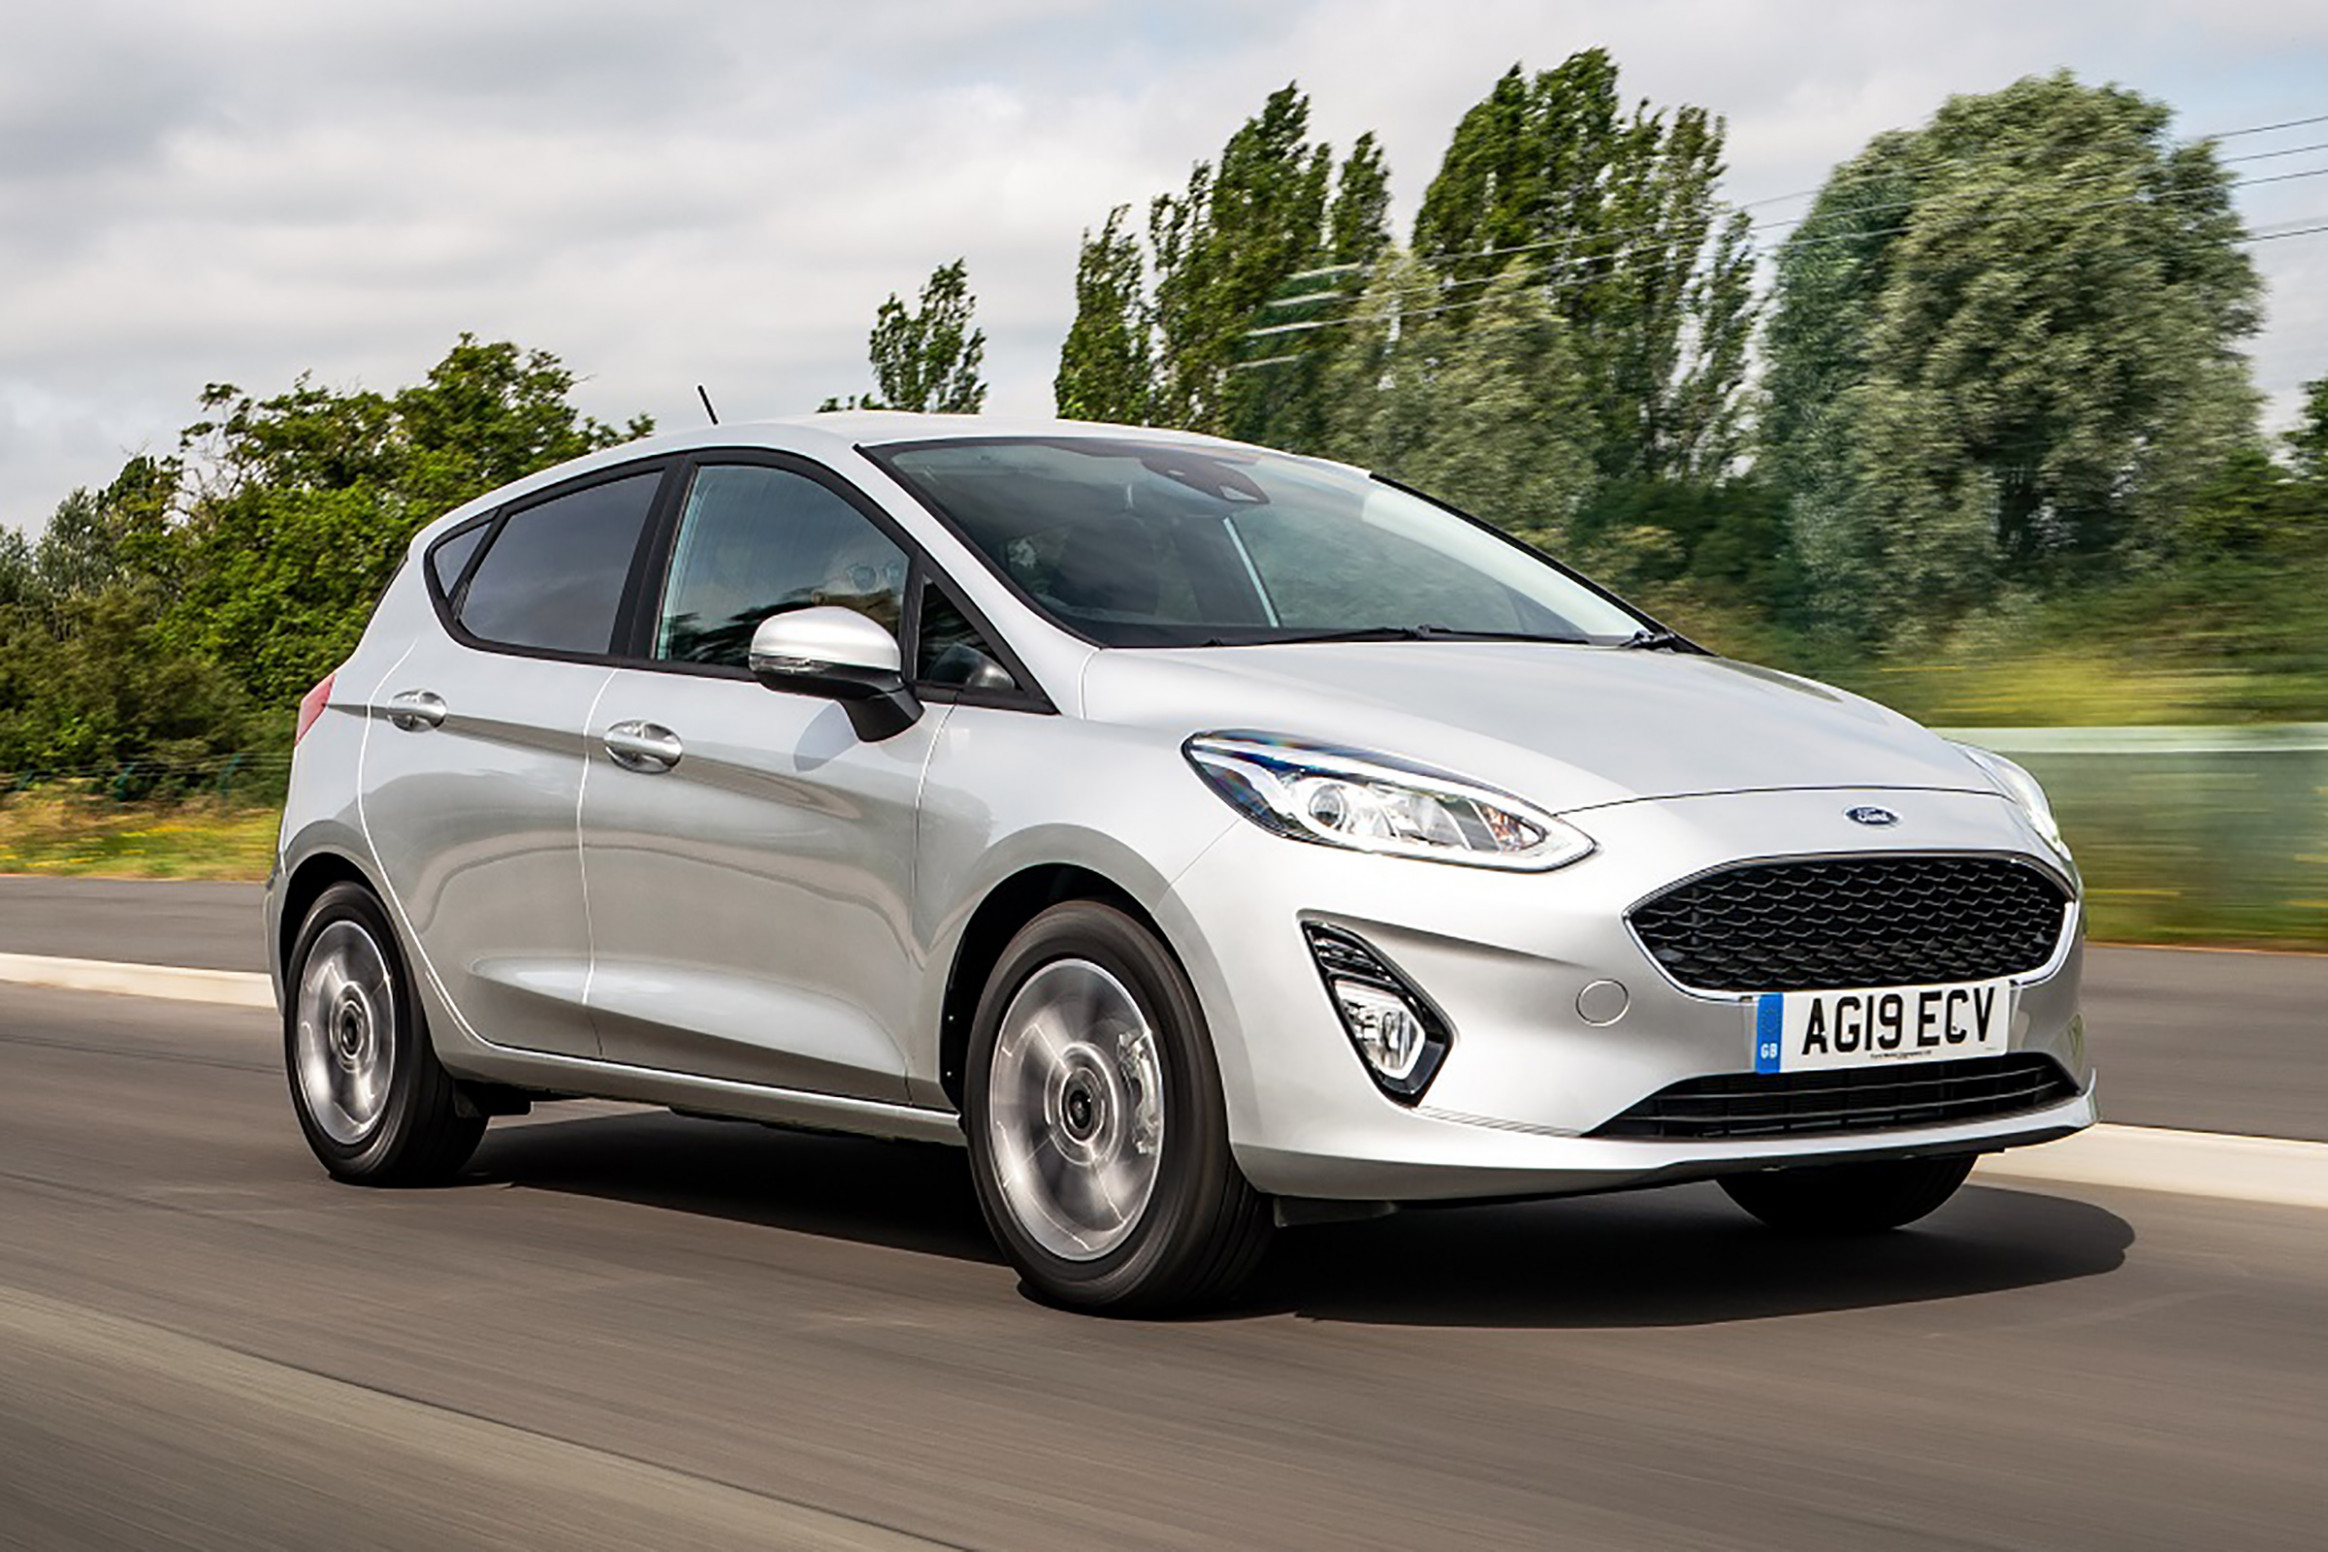 New Ford Fiesta Trend 8 review | Auto Express - ford fiesta zetec 1